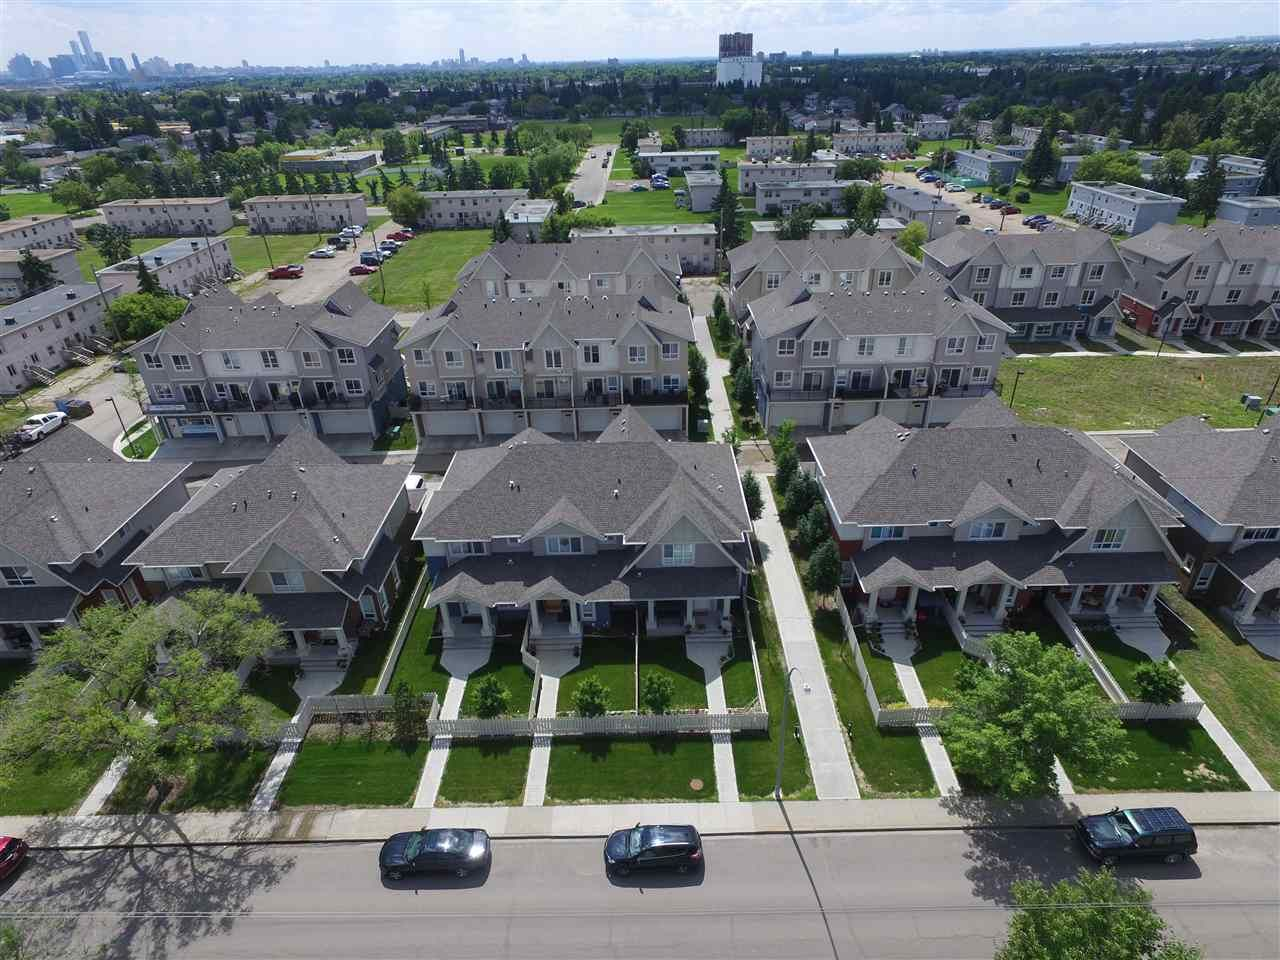 Main Photo: 13 13003 132 Avenue NW in Edmonton: Zone 01 Townhouse for sale : MLS®# E4220298